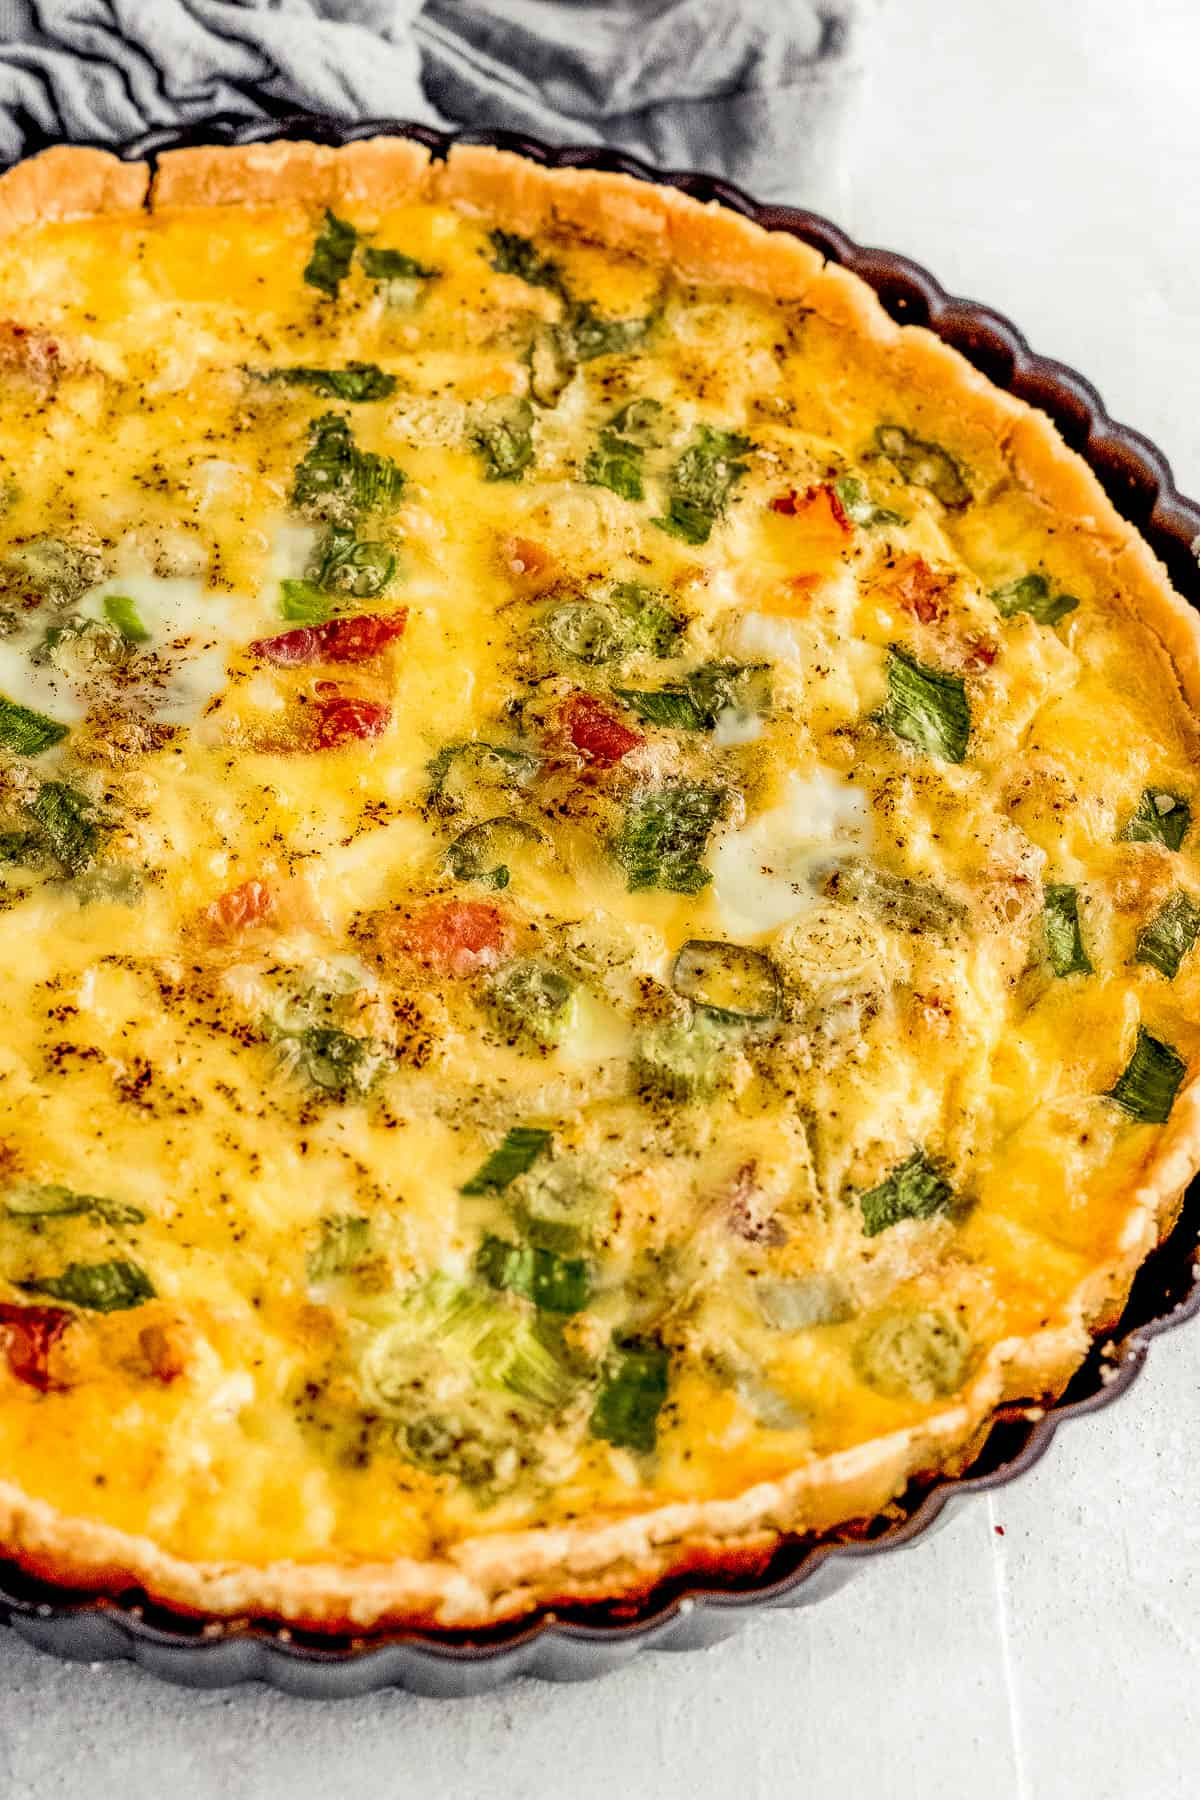 A Freshly Baked Quiche Lorraine Inside of a Black Quiche Pan